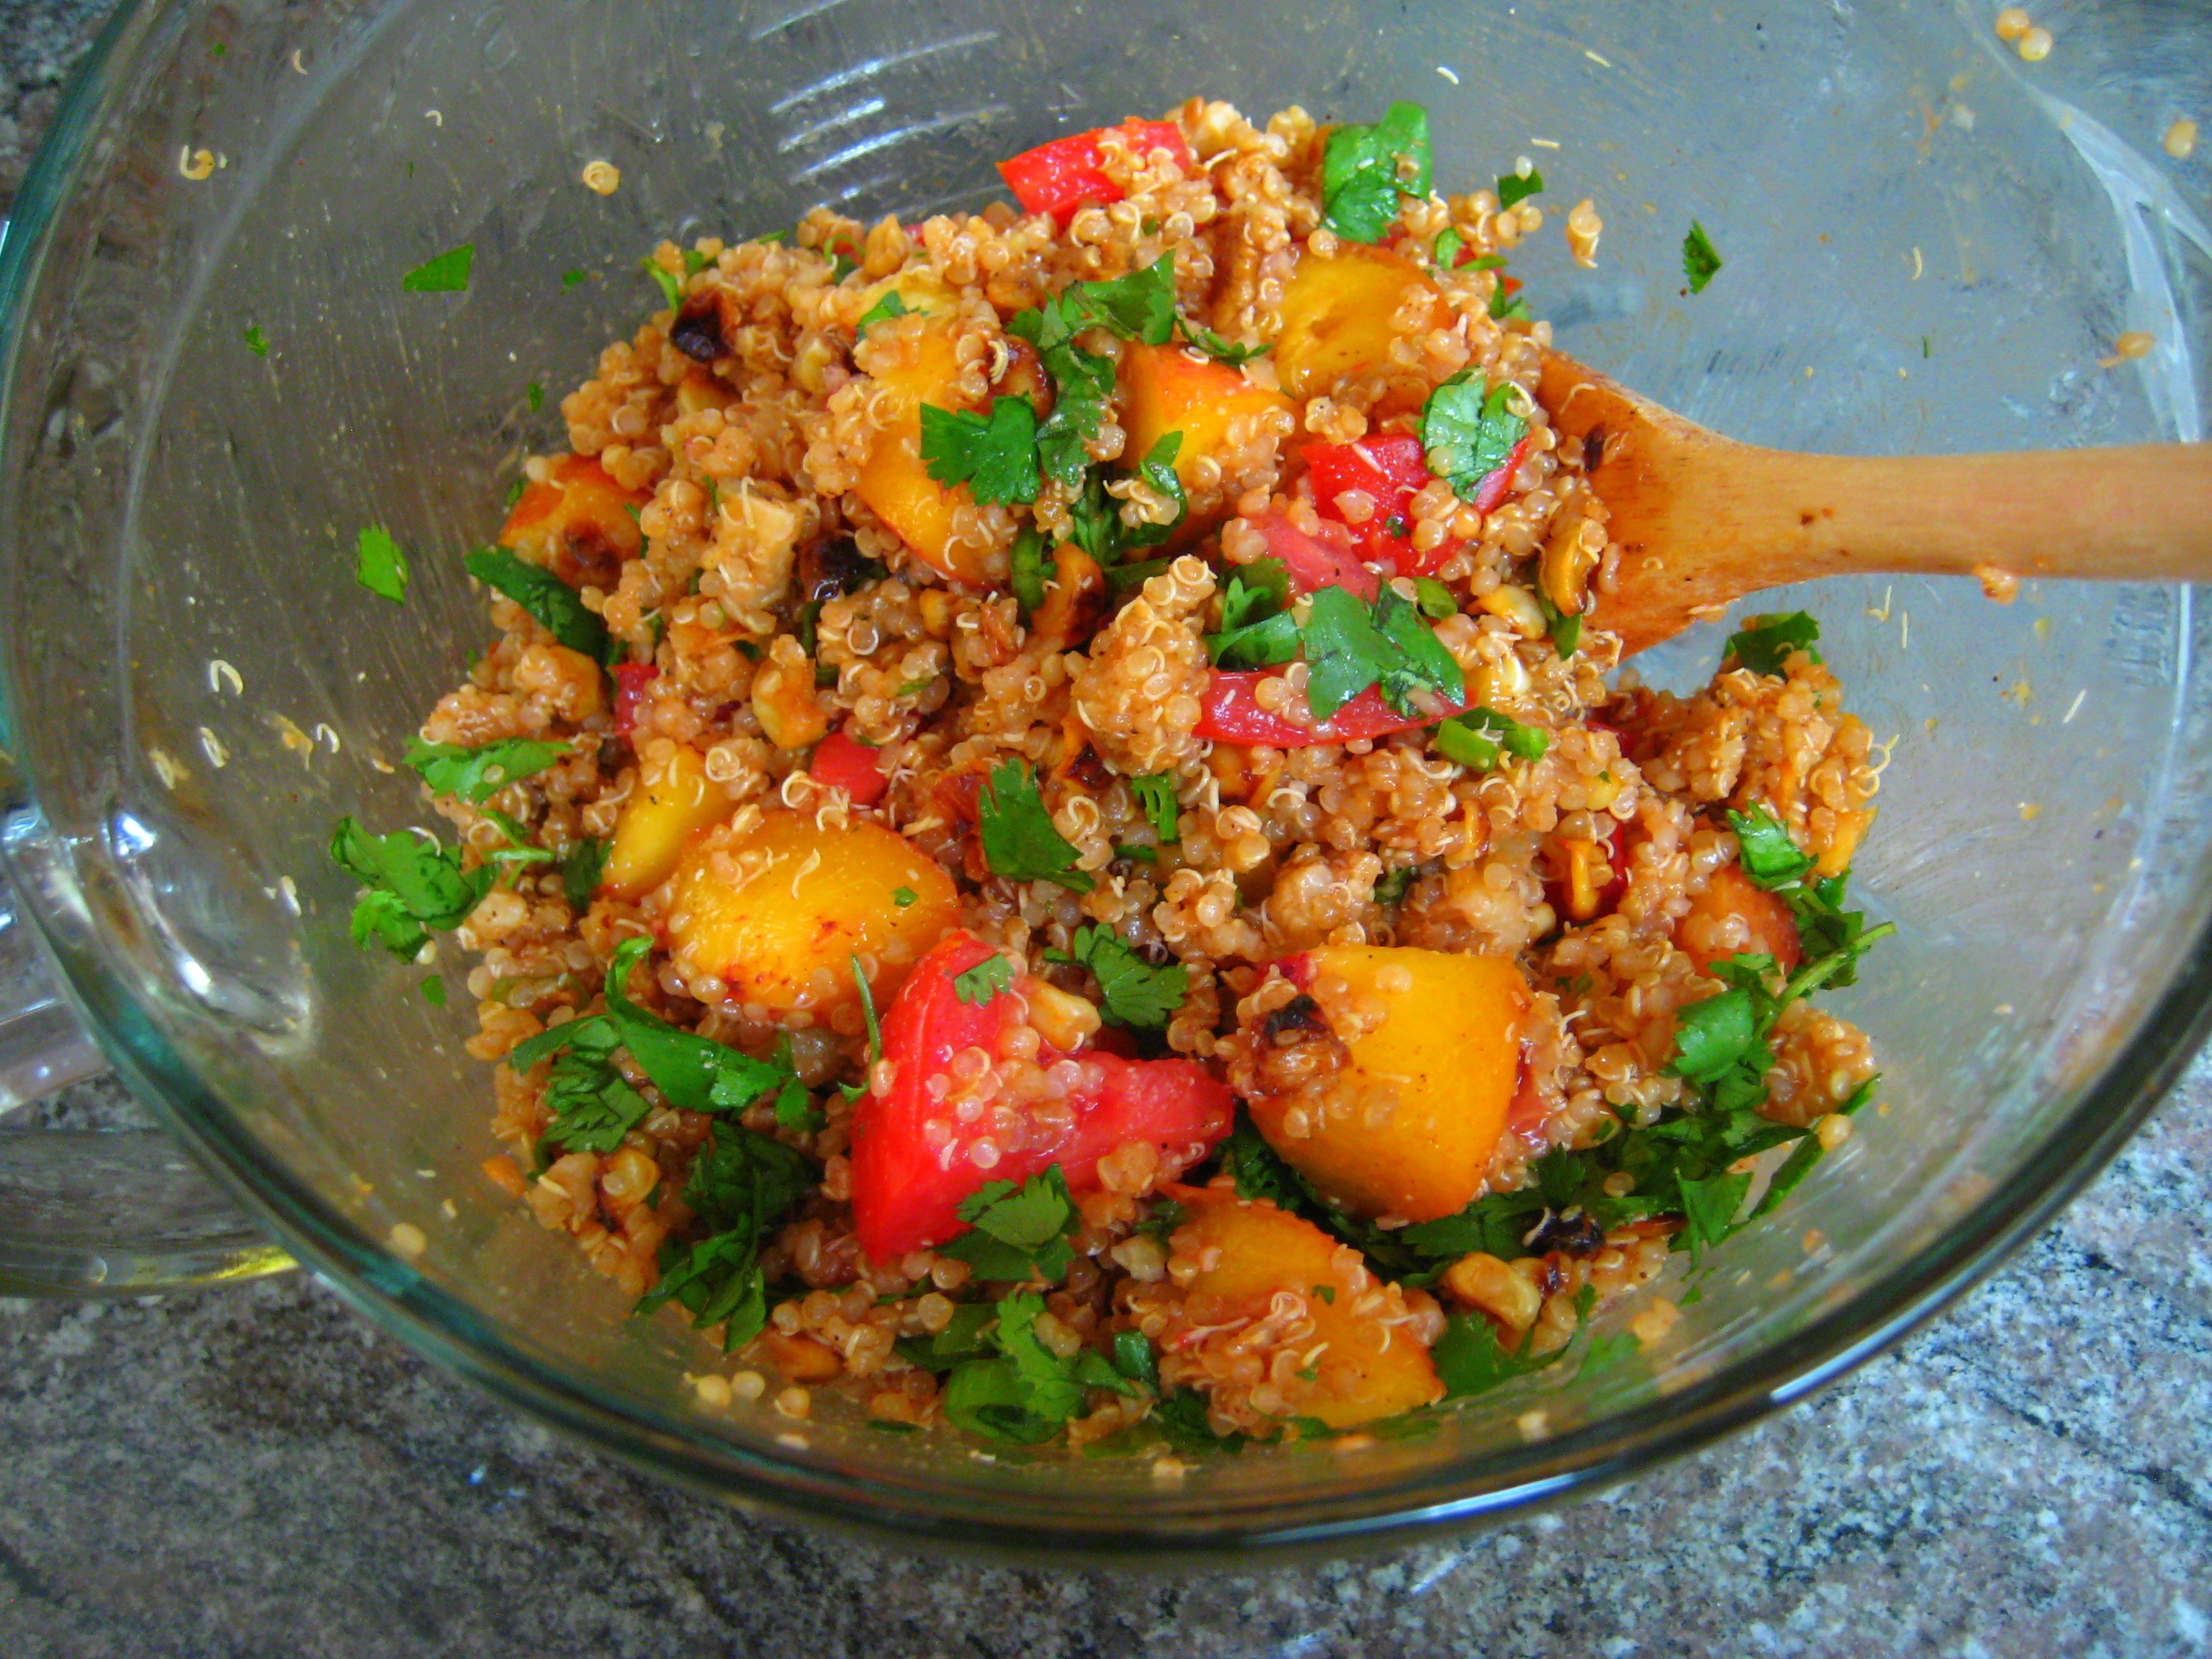 vegan barbecue quinoa salad with peaches, corn, and tomatoes